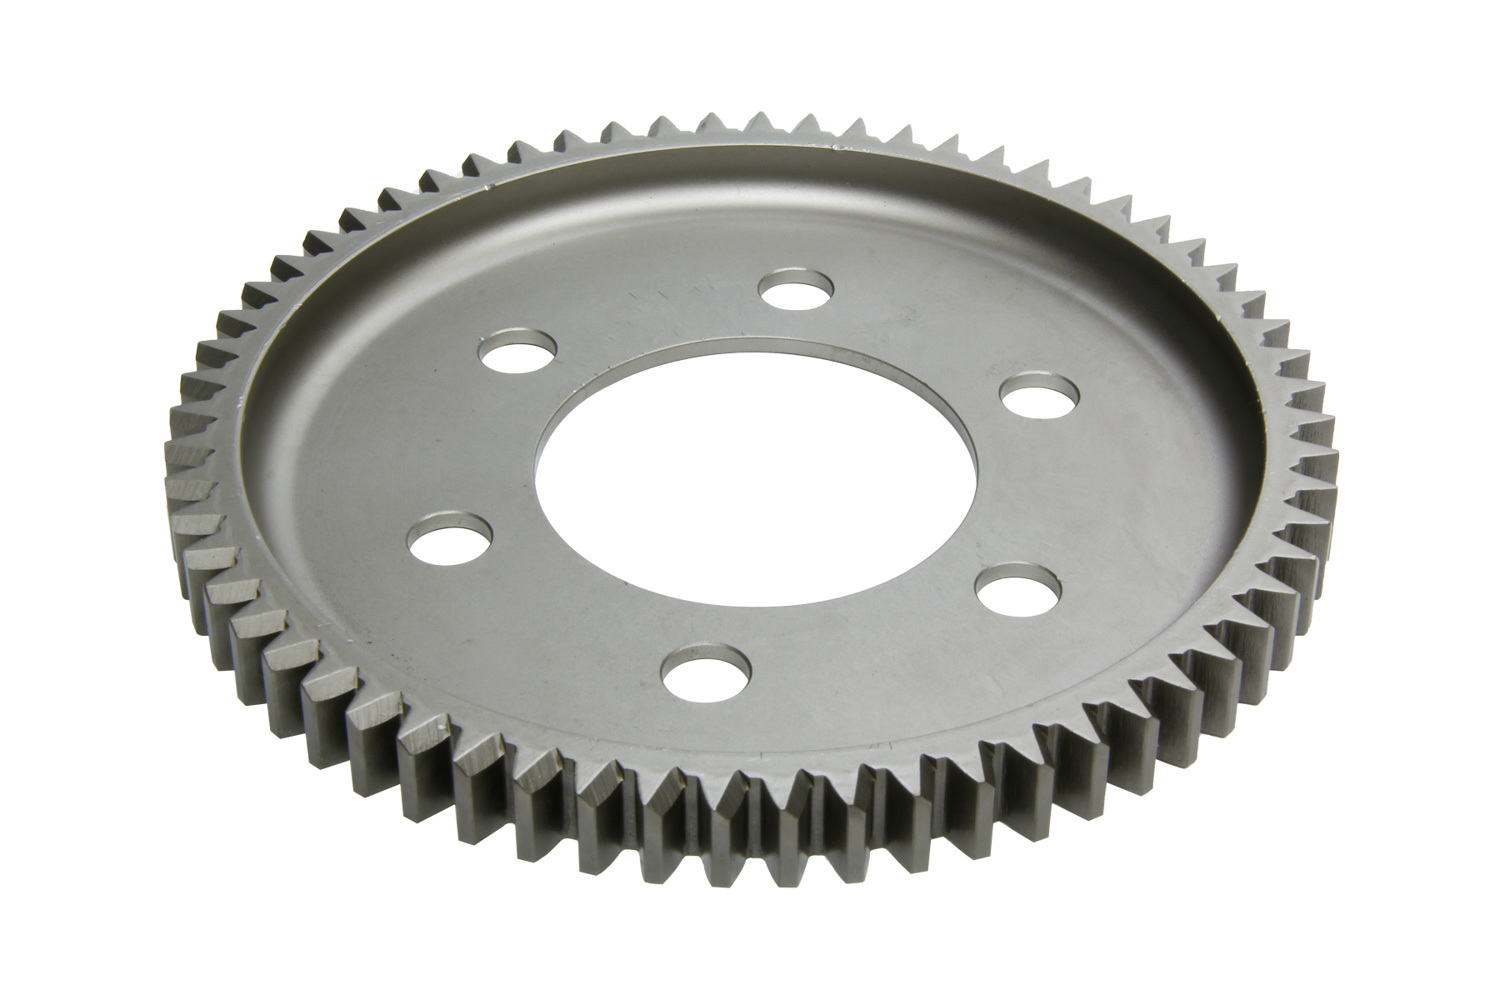 Winters 62479-A Ring Gear, 6-1/2 in Diameter, 63 Tooth, Steel, Chevy V8, Each